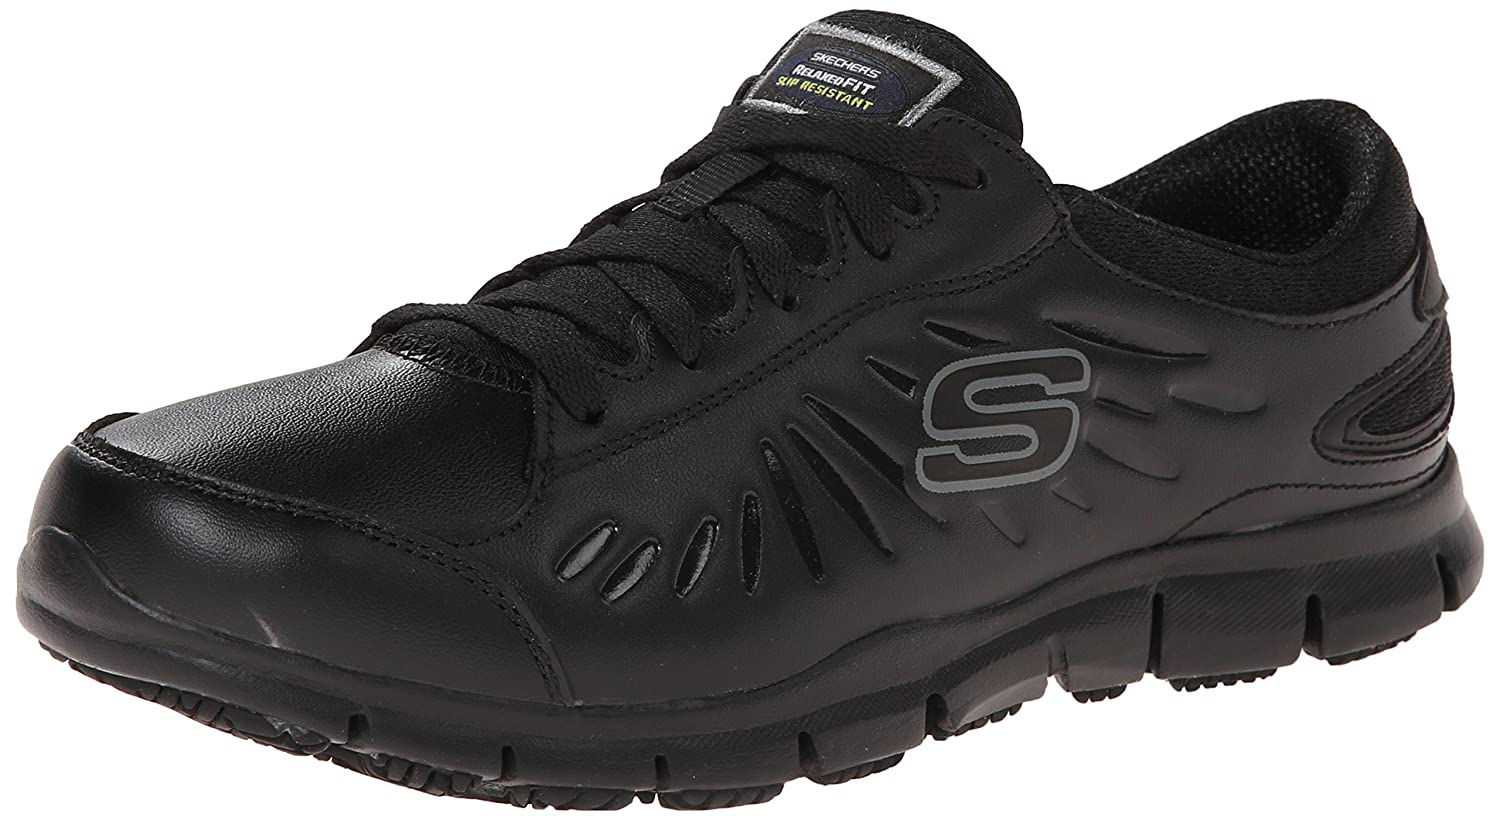 Skechers for B00GM46UYI Work Women's Eldred Slip Resistant Shoe B00GM46UYI for 7.5 B(M) US|Black 175009